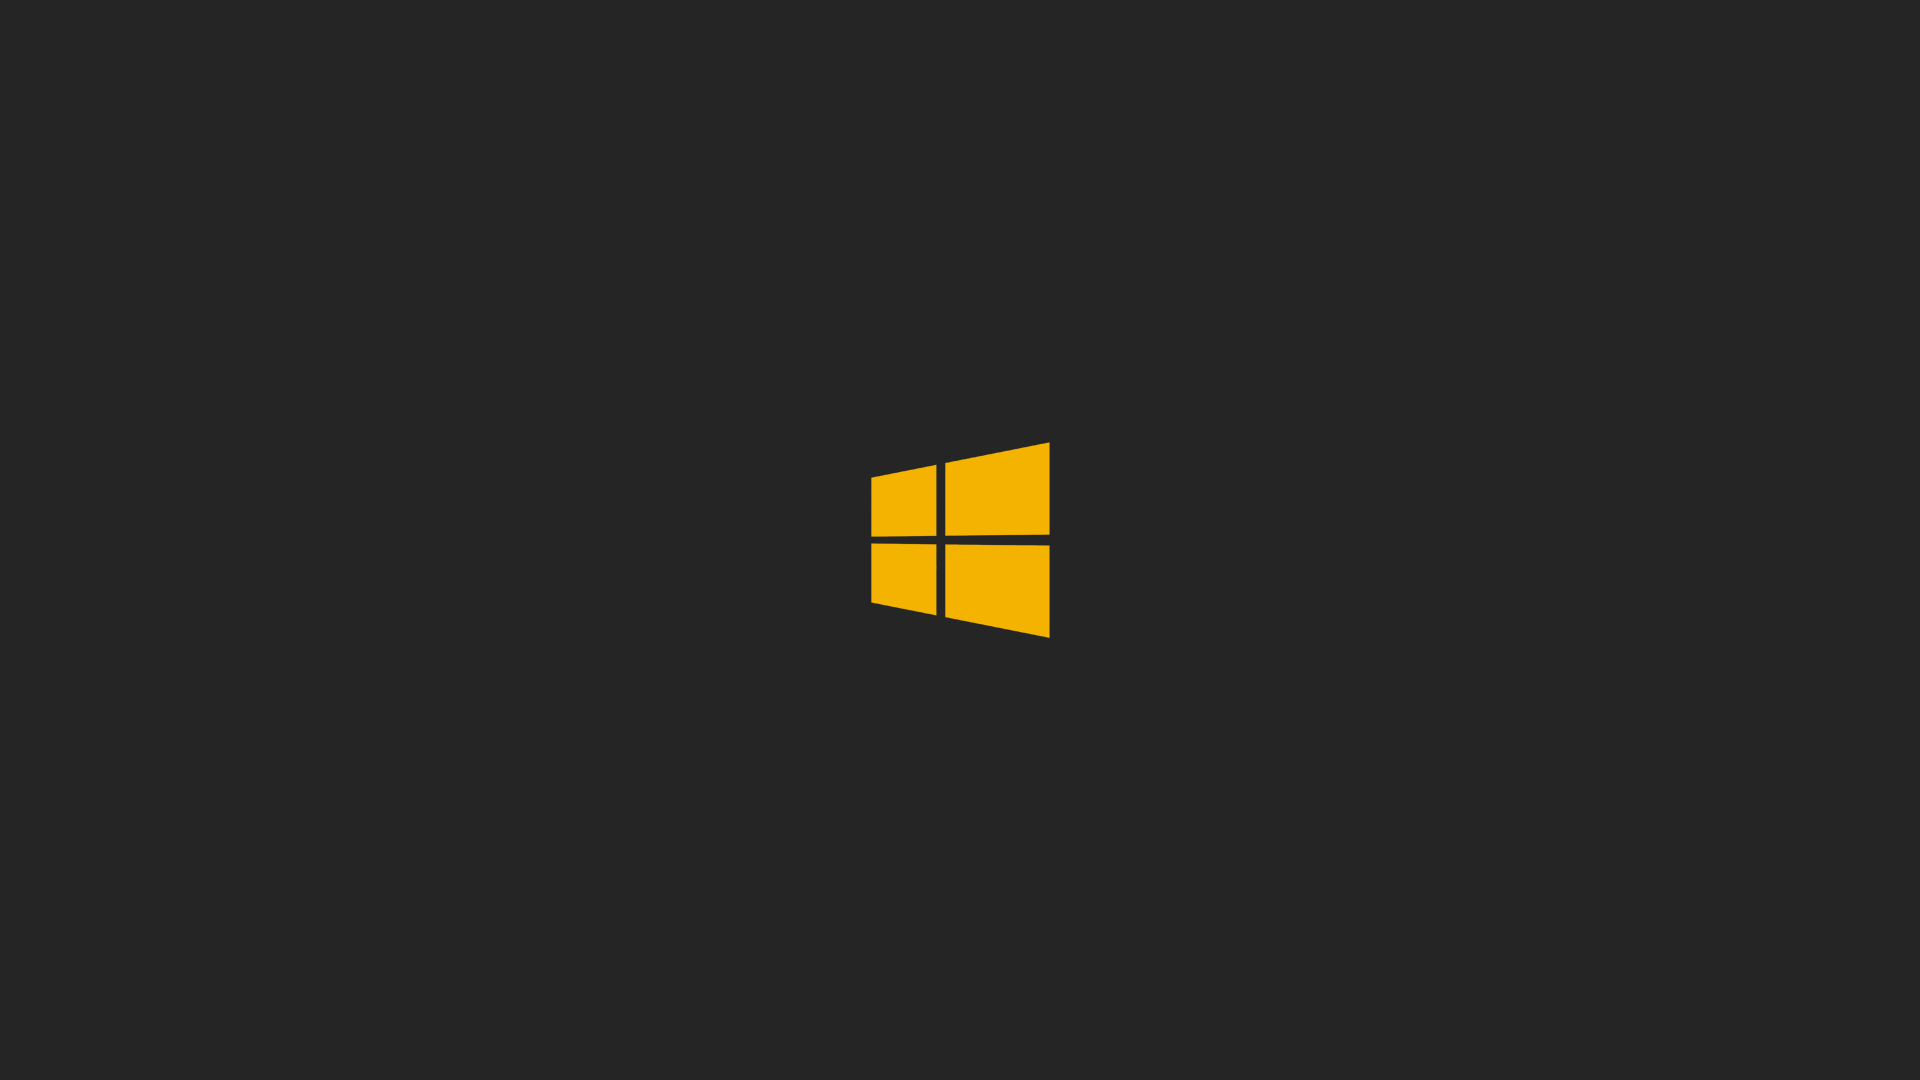 Microsoft Windows 8 Backgound Wallpapers Yellow HD Wallpapers 1920x1080